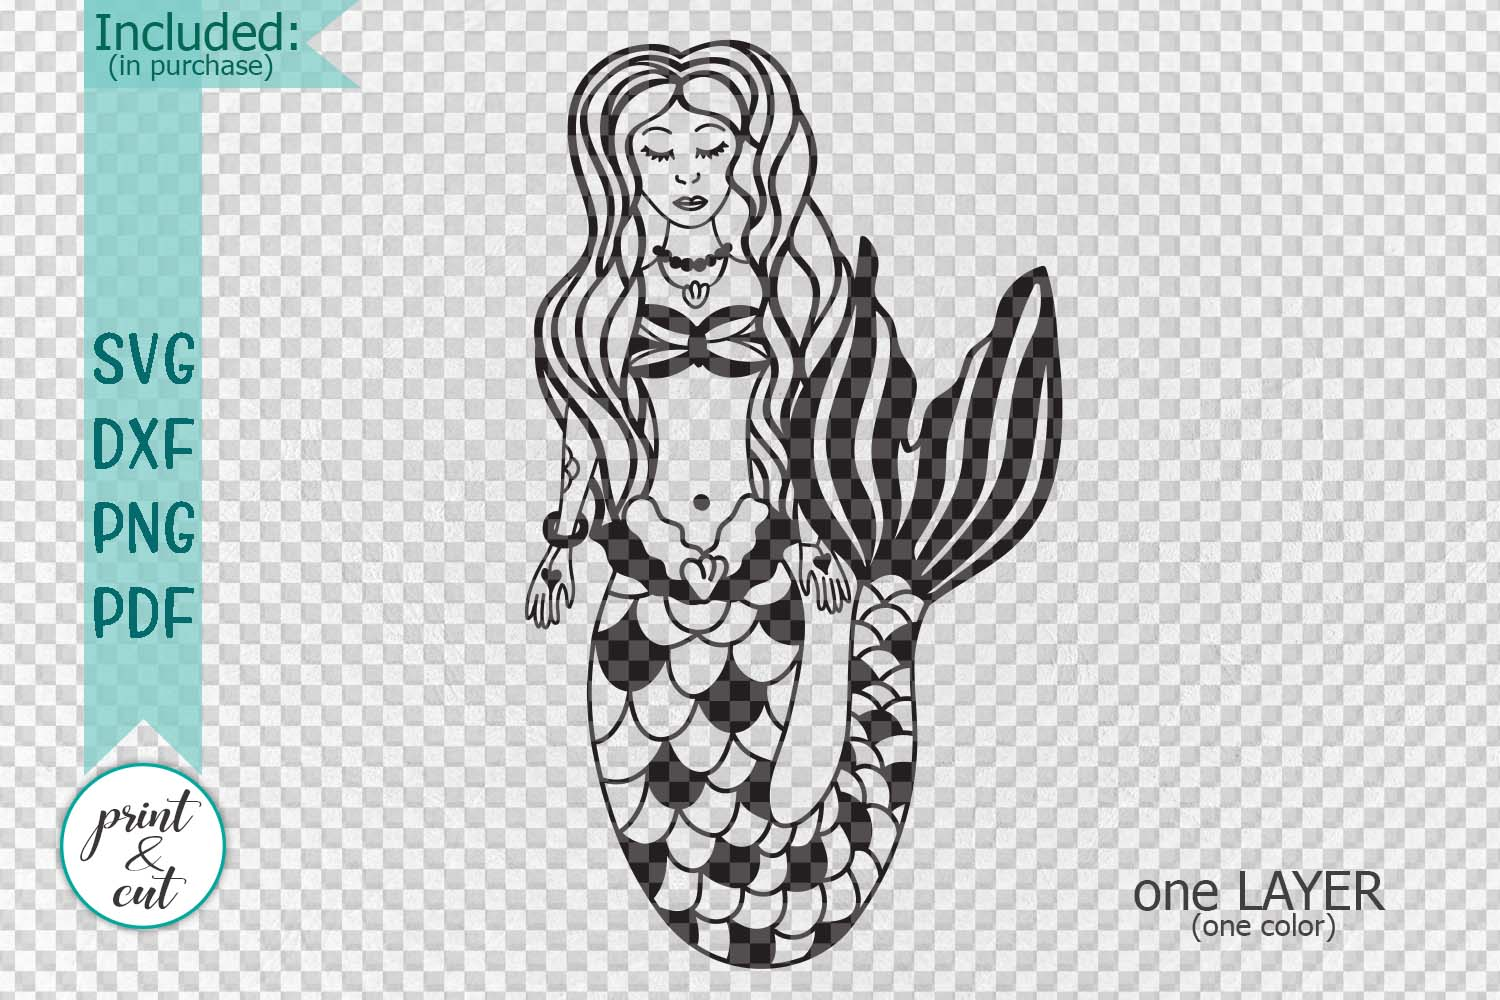 Mermaid Svg Graphic By Cornelia Creative Fabrica